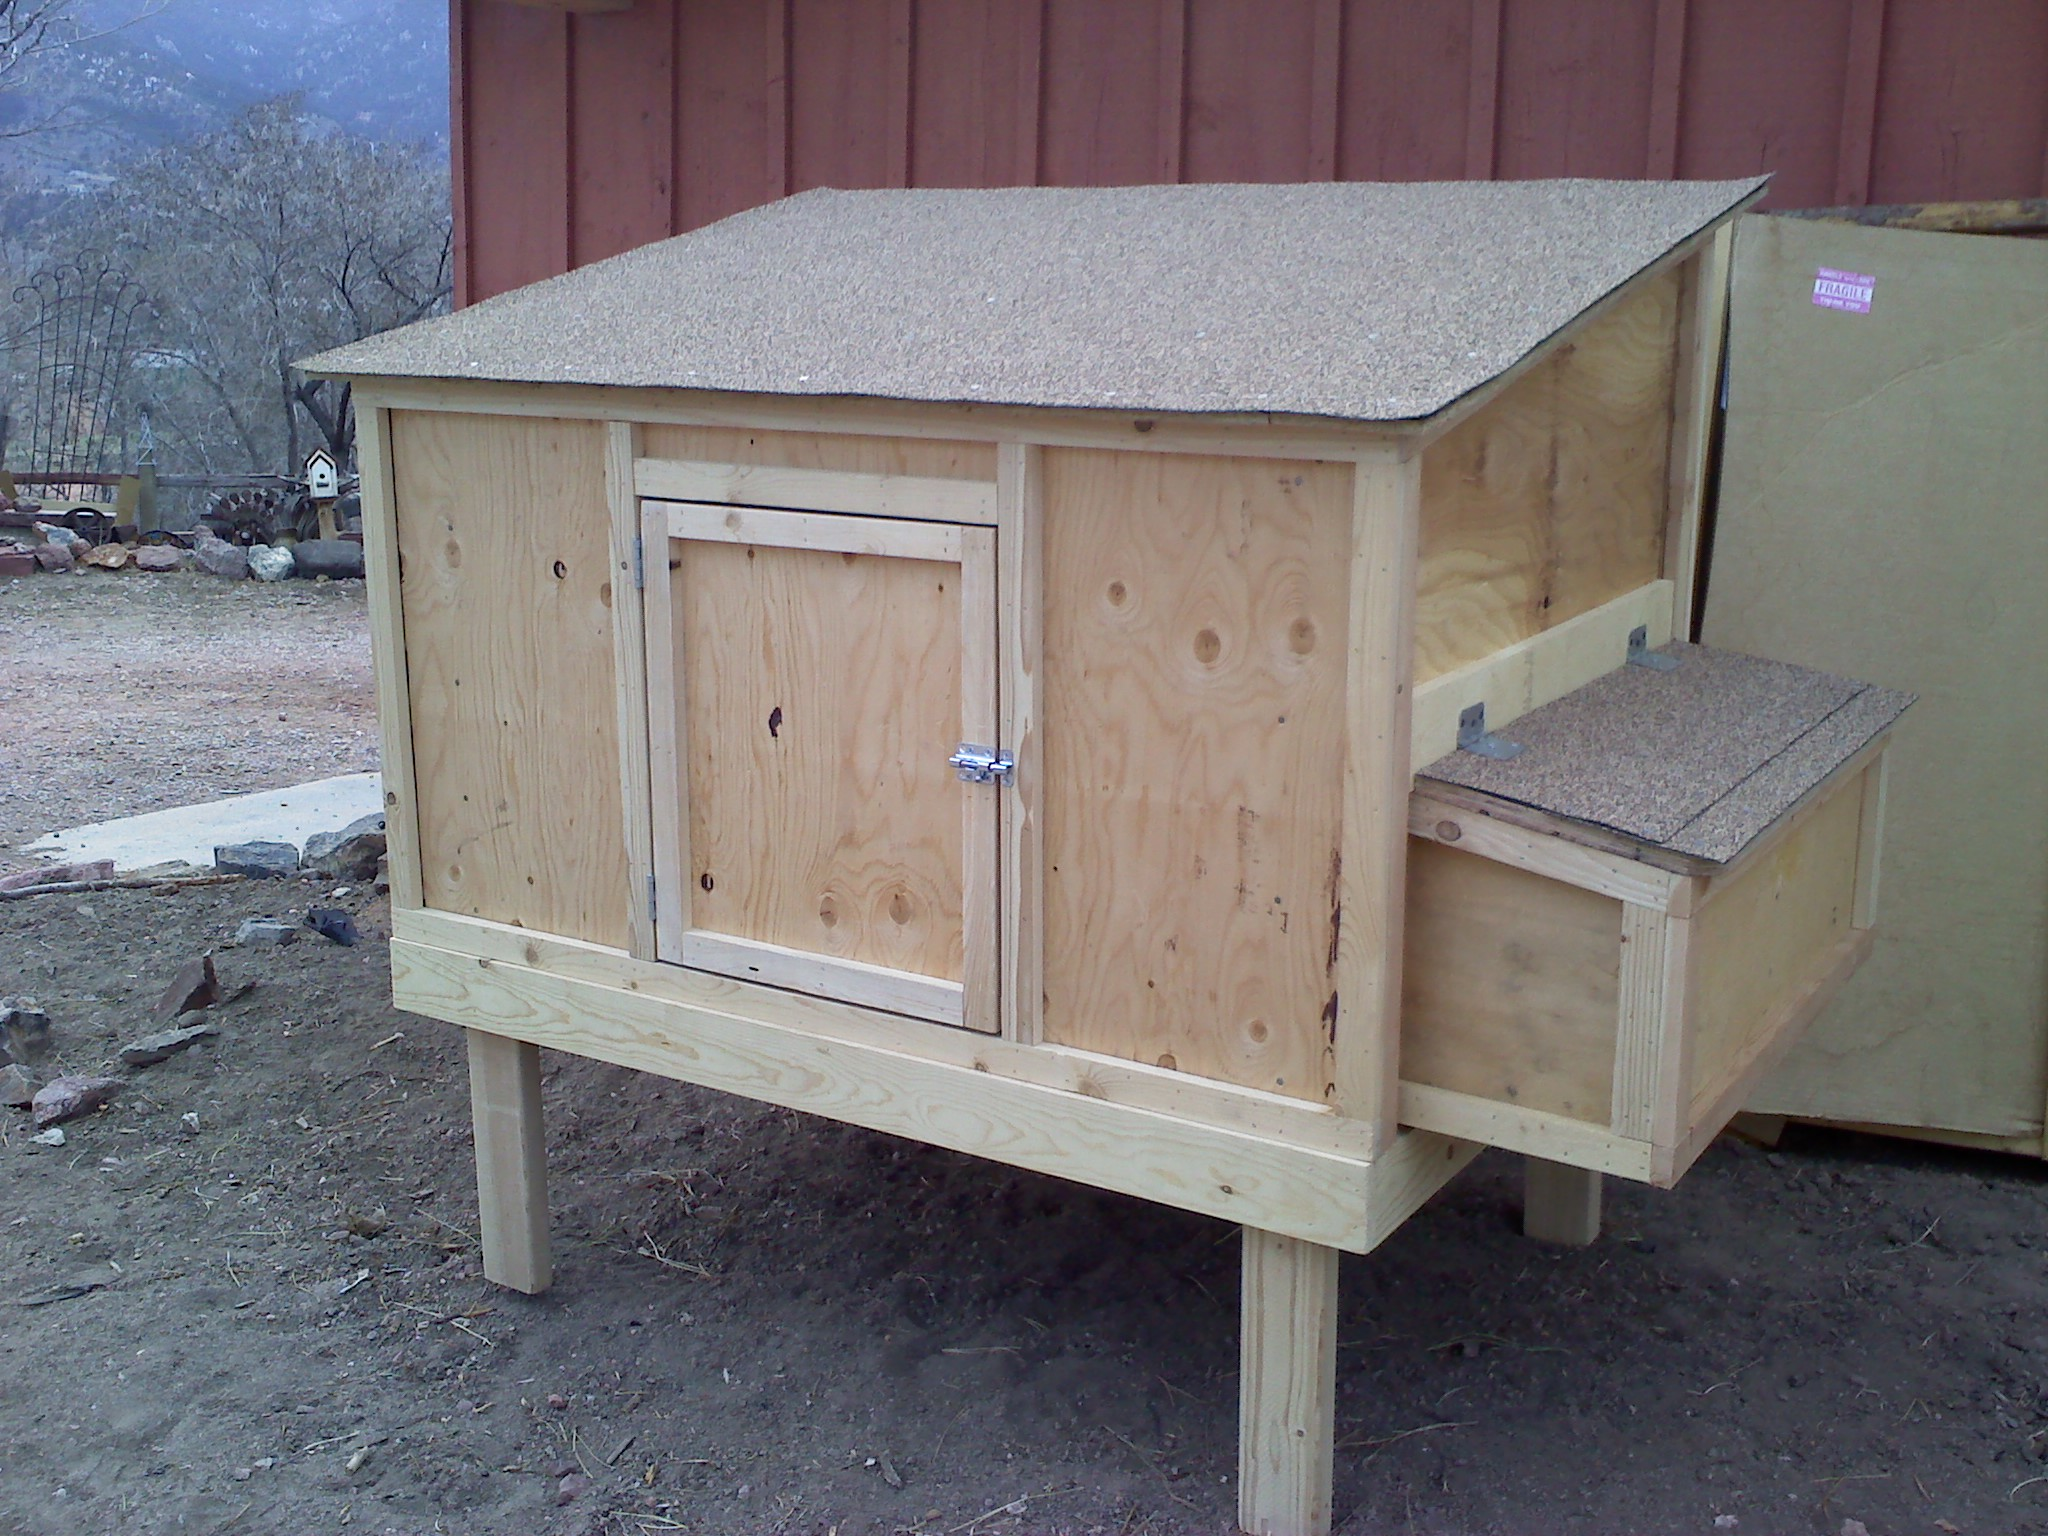 Chicken coops for sale the goat cheese lady for Homemade chicken coops for sale